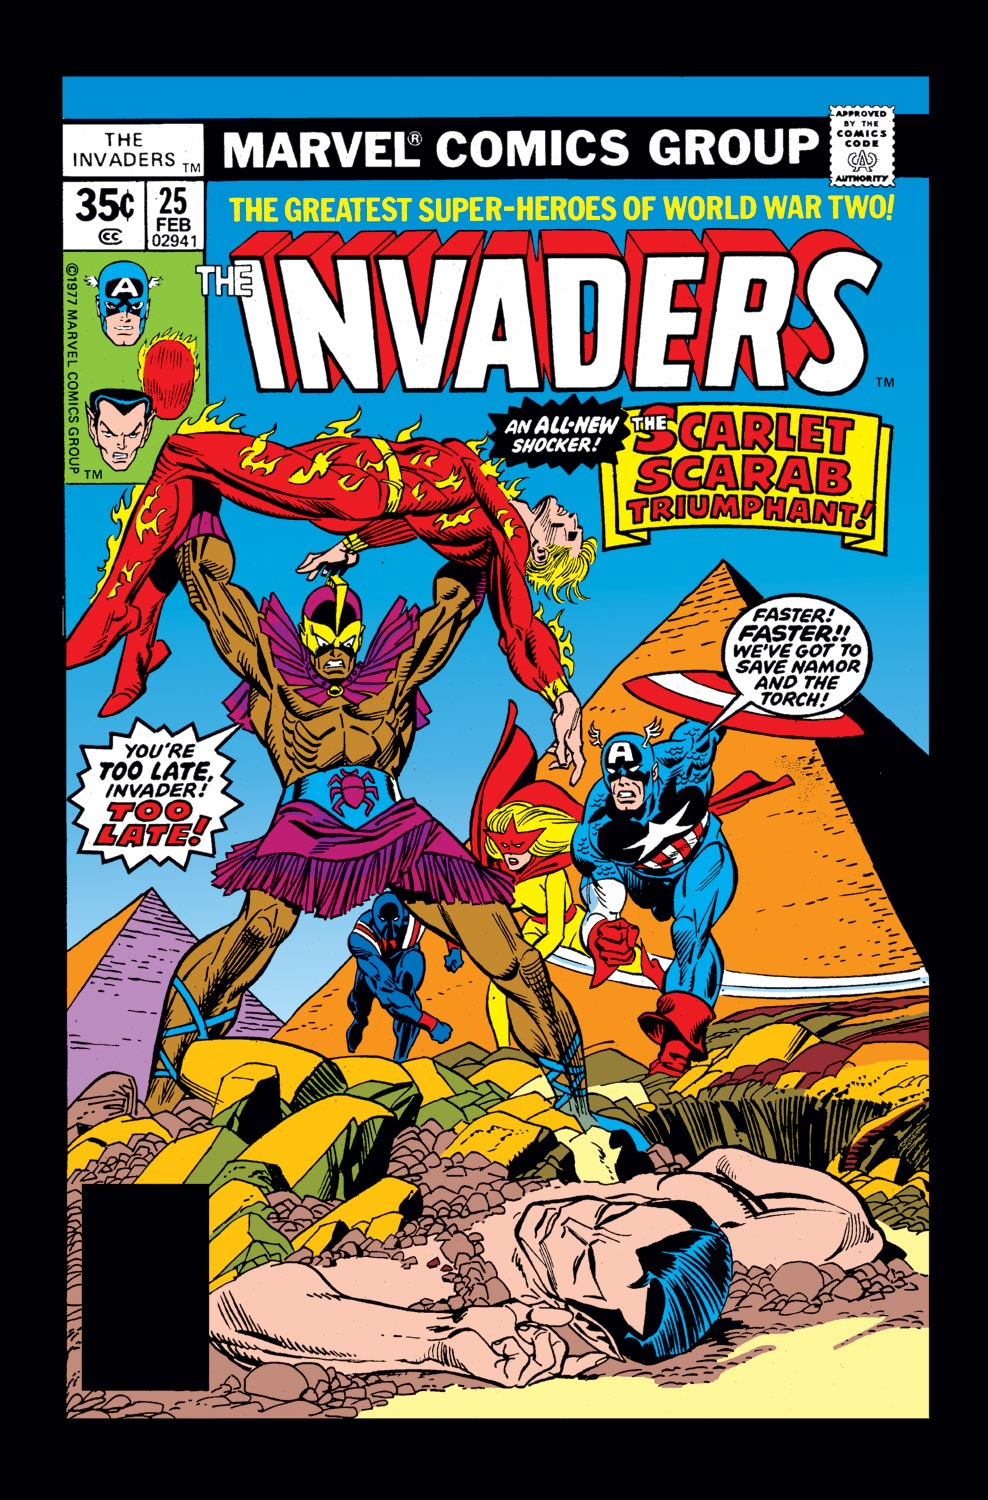 Invaders (1975) #25